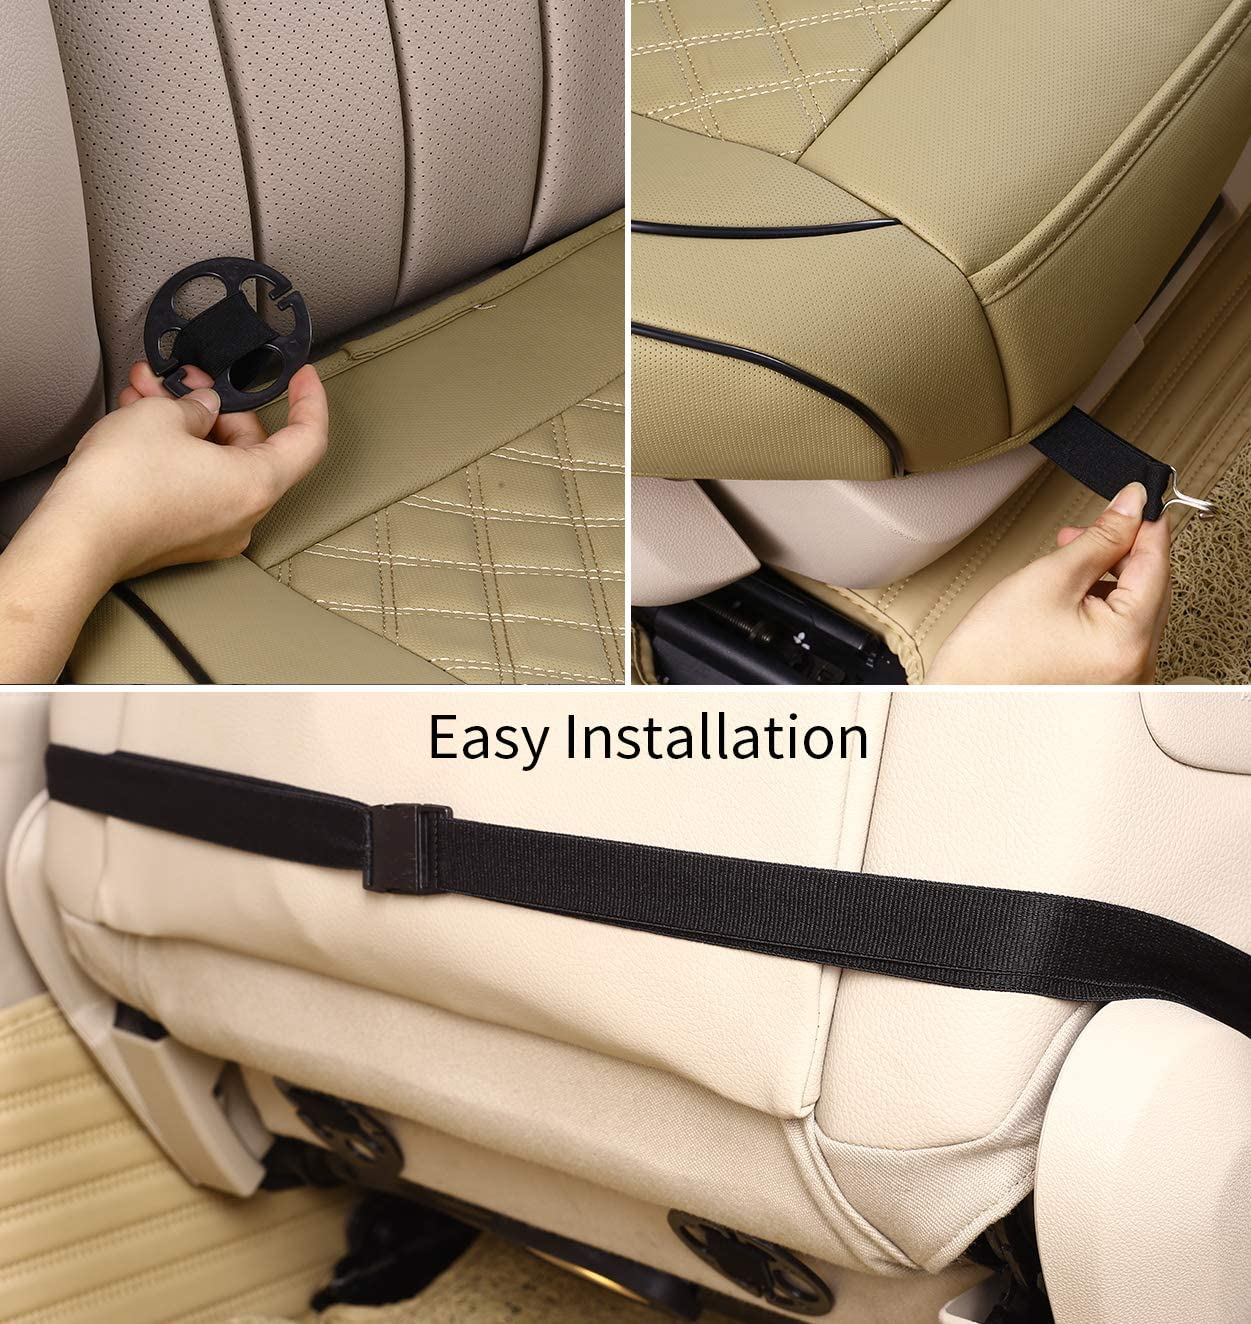 1Piece, Black . Front Seat Protector for Car Compatible with Most Vehicles Upgrade Pu Leather Seat Cover for Cars with Full Wrapping Edge /& Non-Slip Bottom kingphenix Premium Car Seat Cover